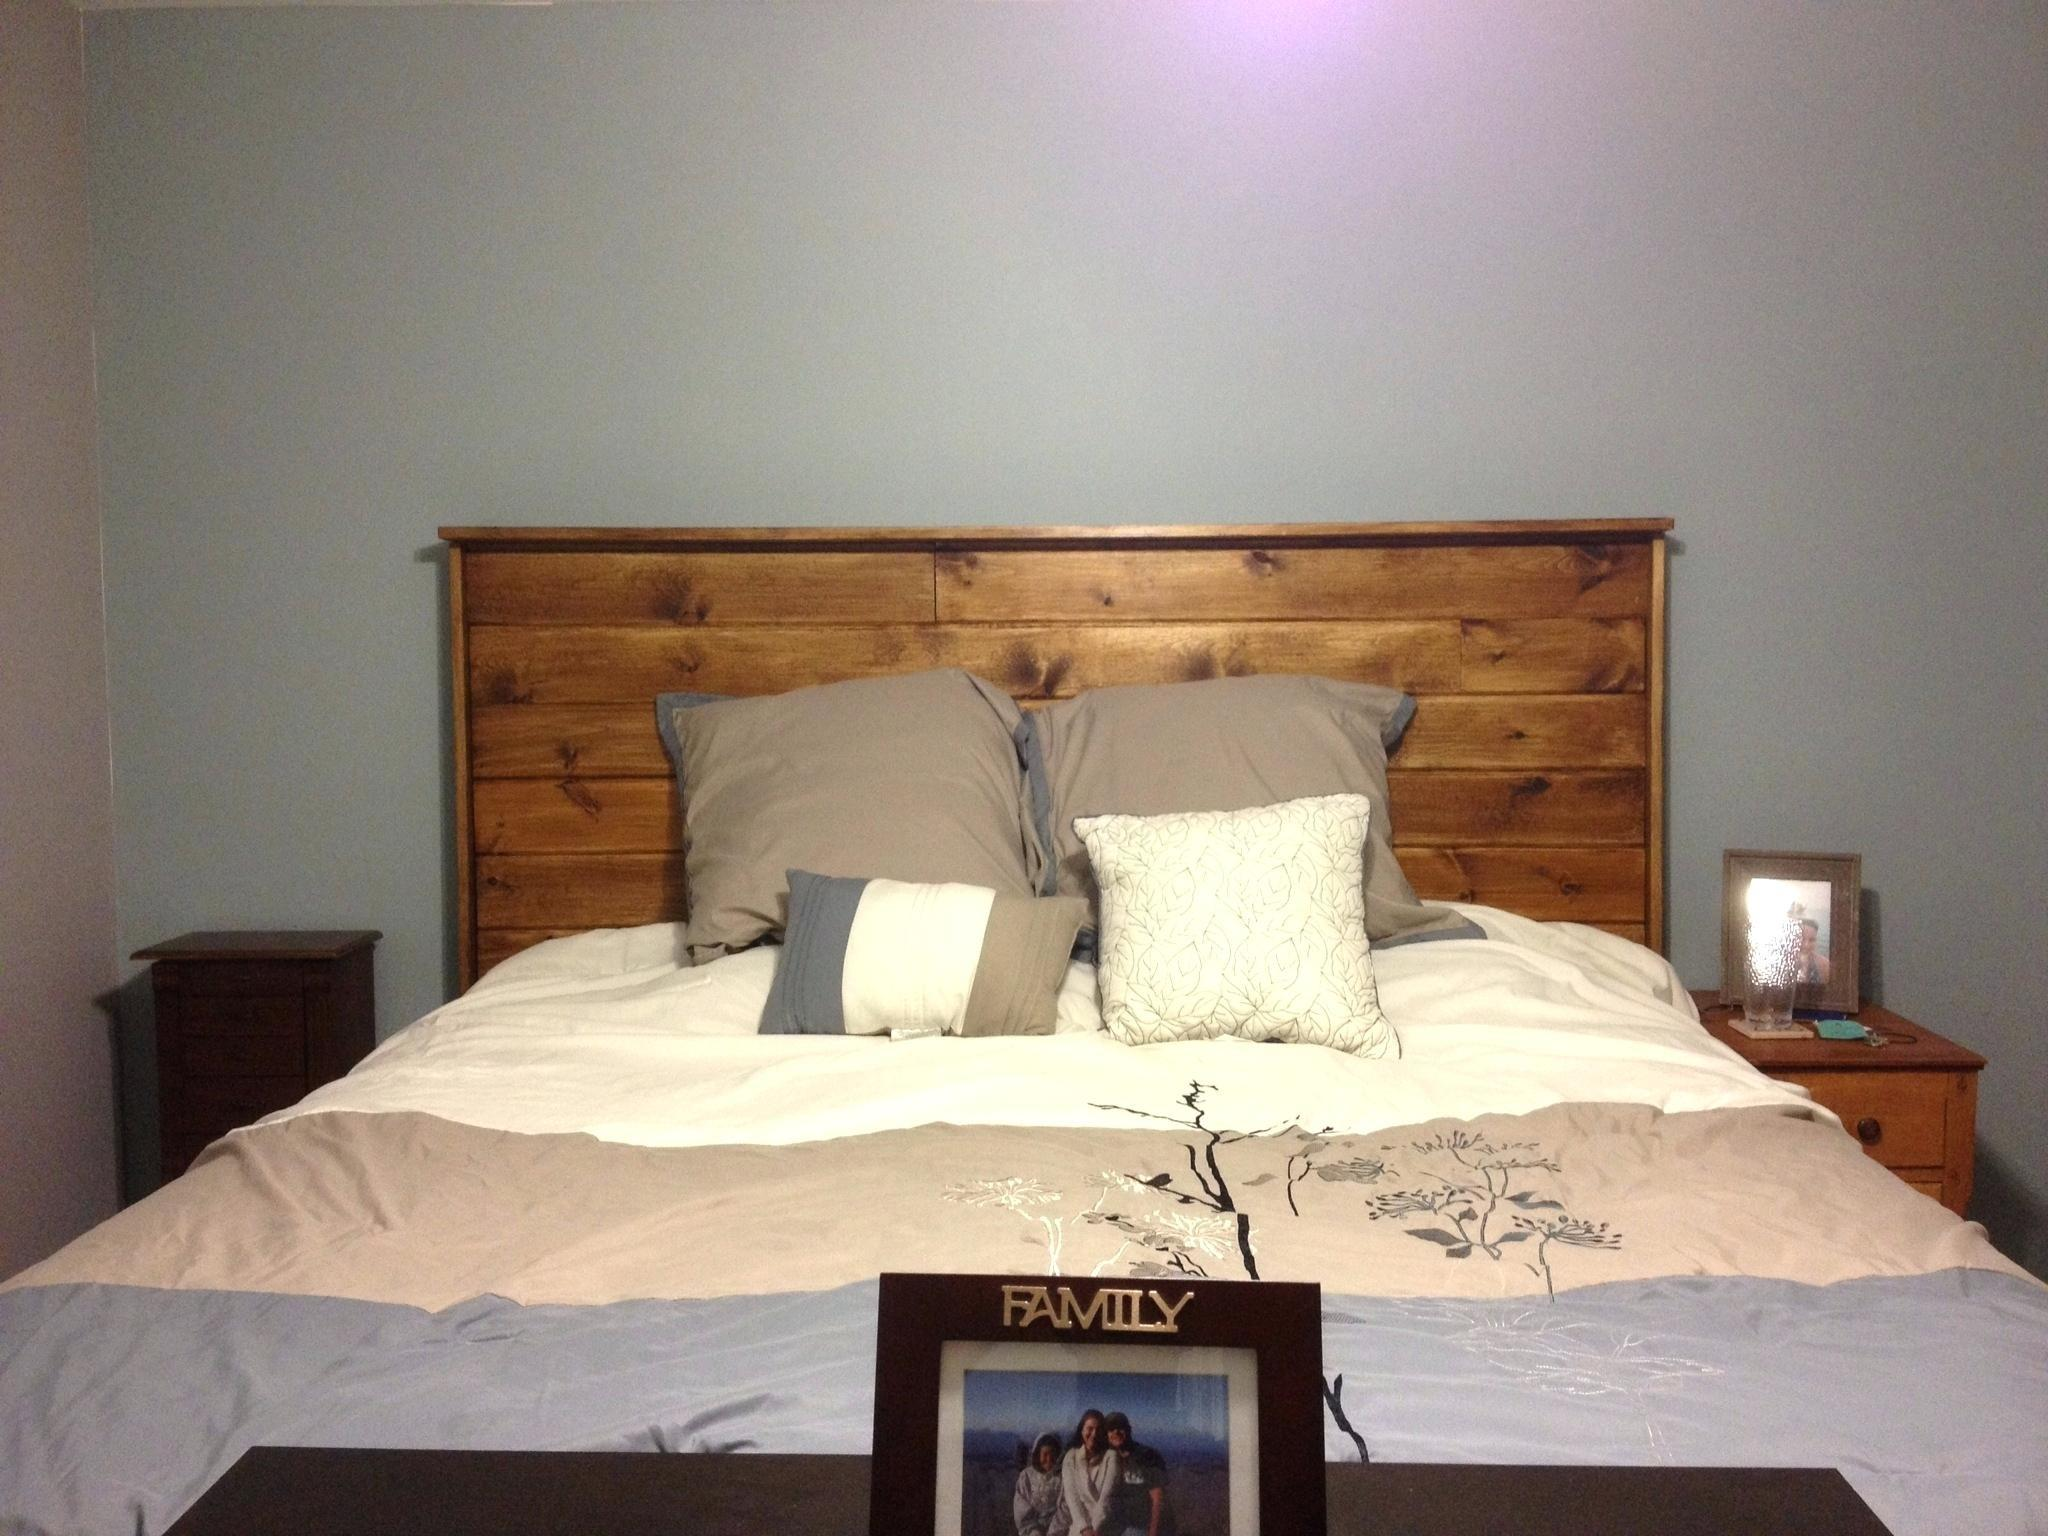 Homemade Headboard Wishes His Bed